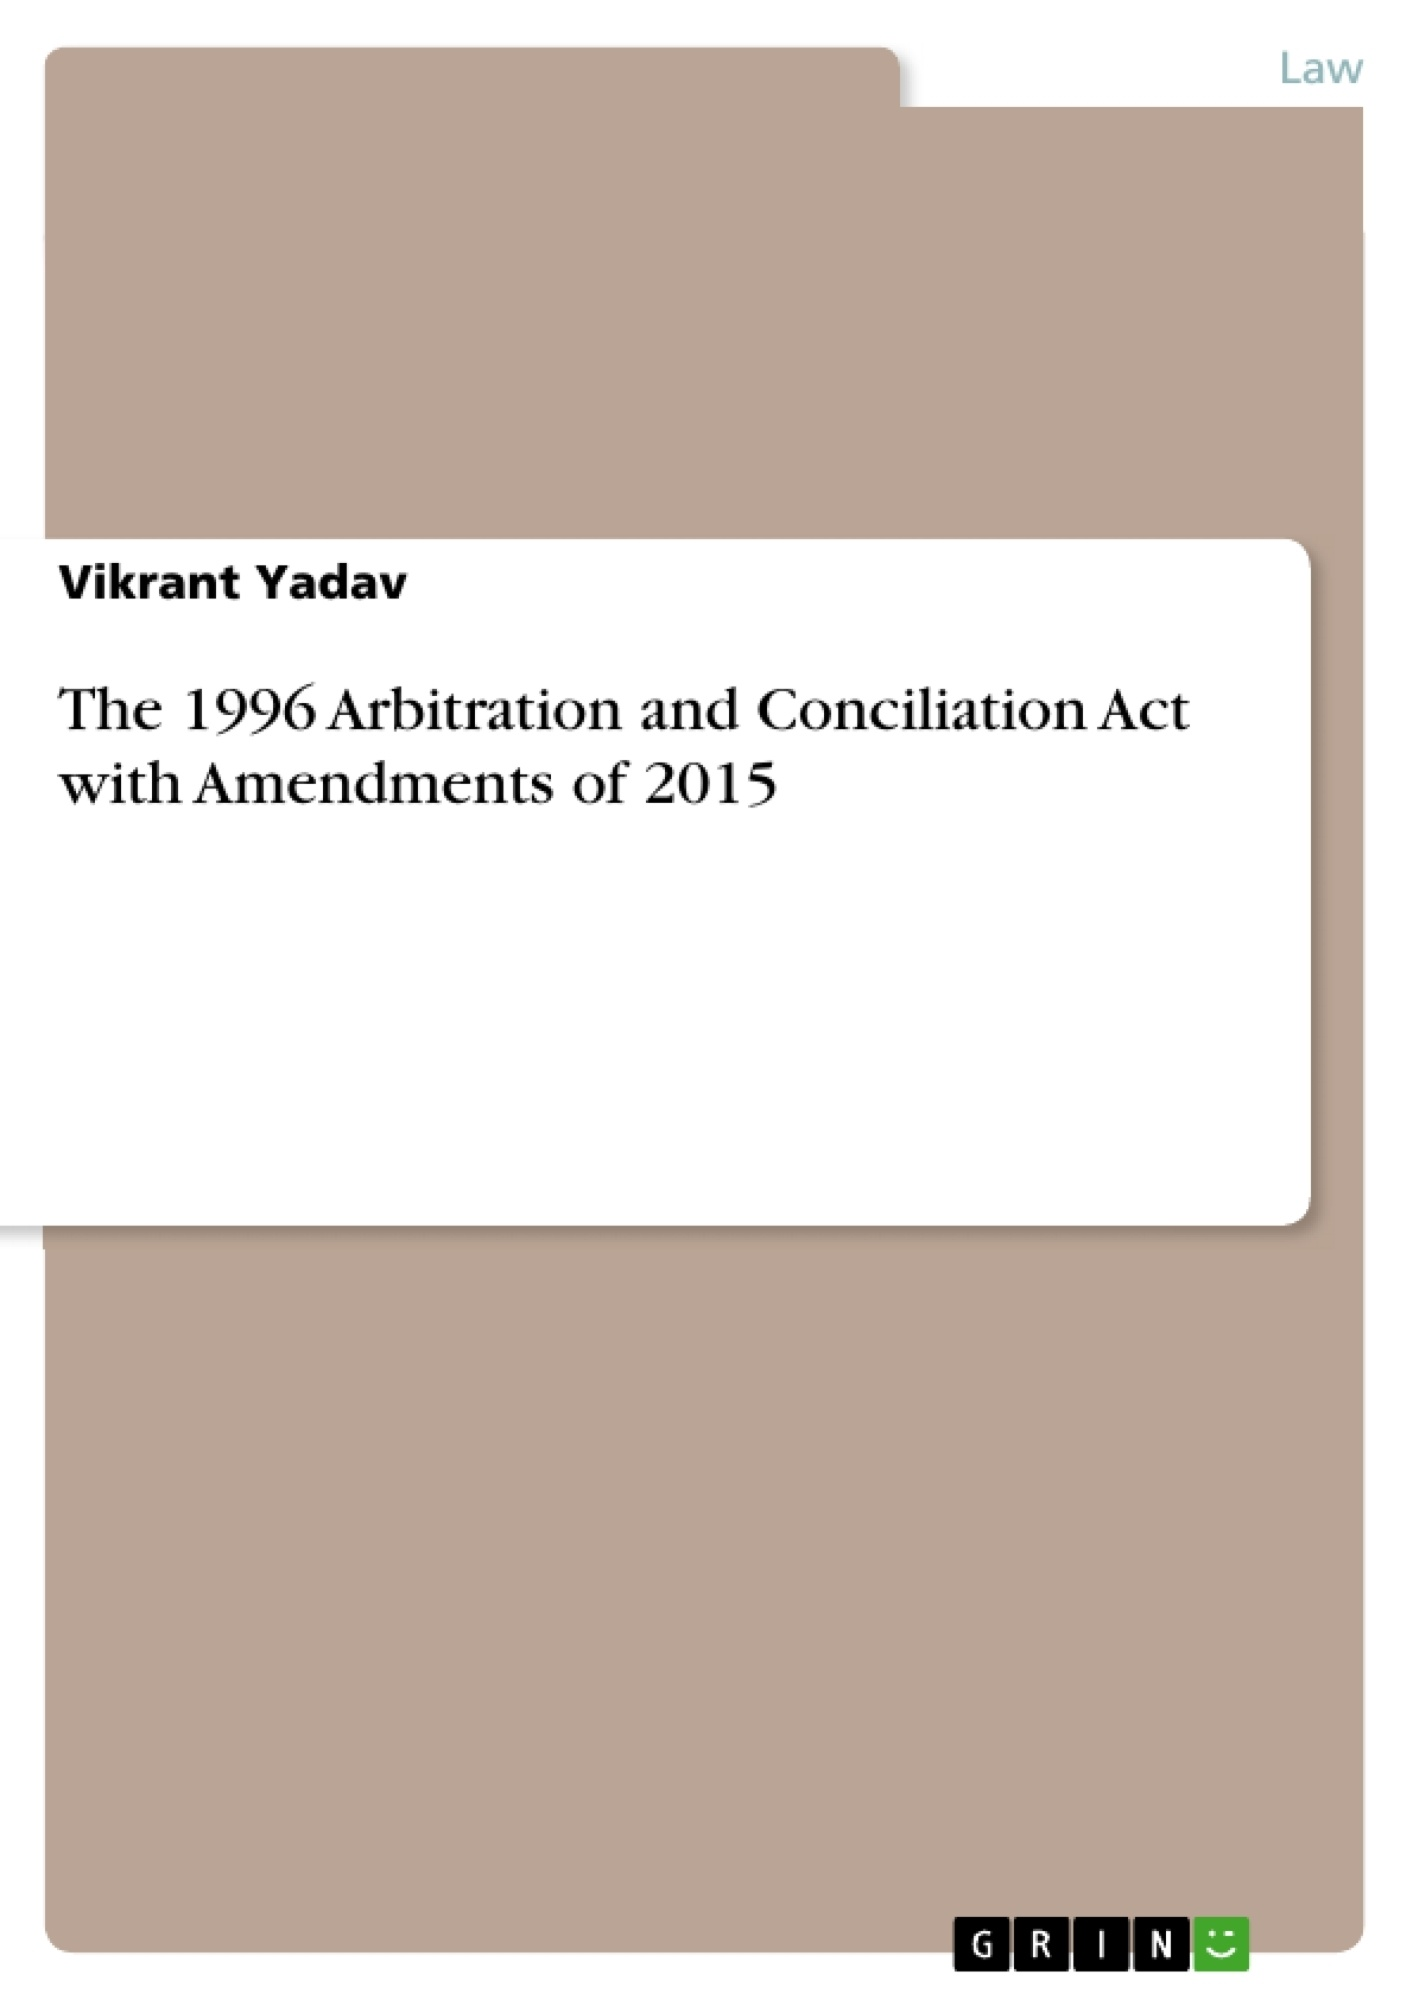 Title: The 1996 Arbitration and Conciliation Act with Amendments of 2015